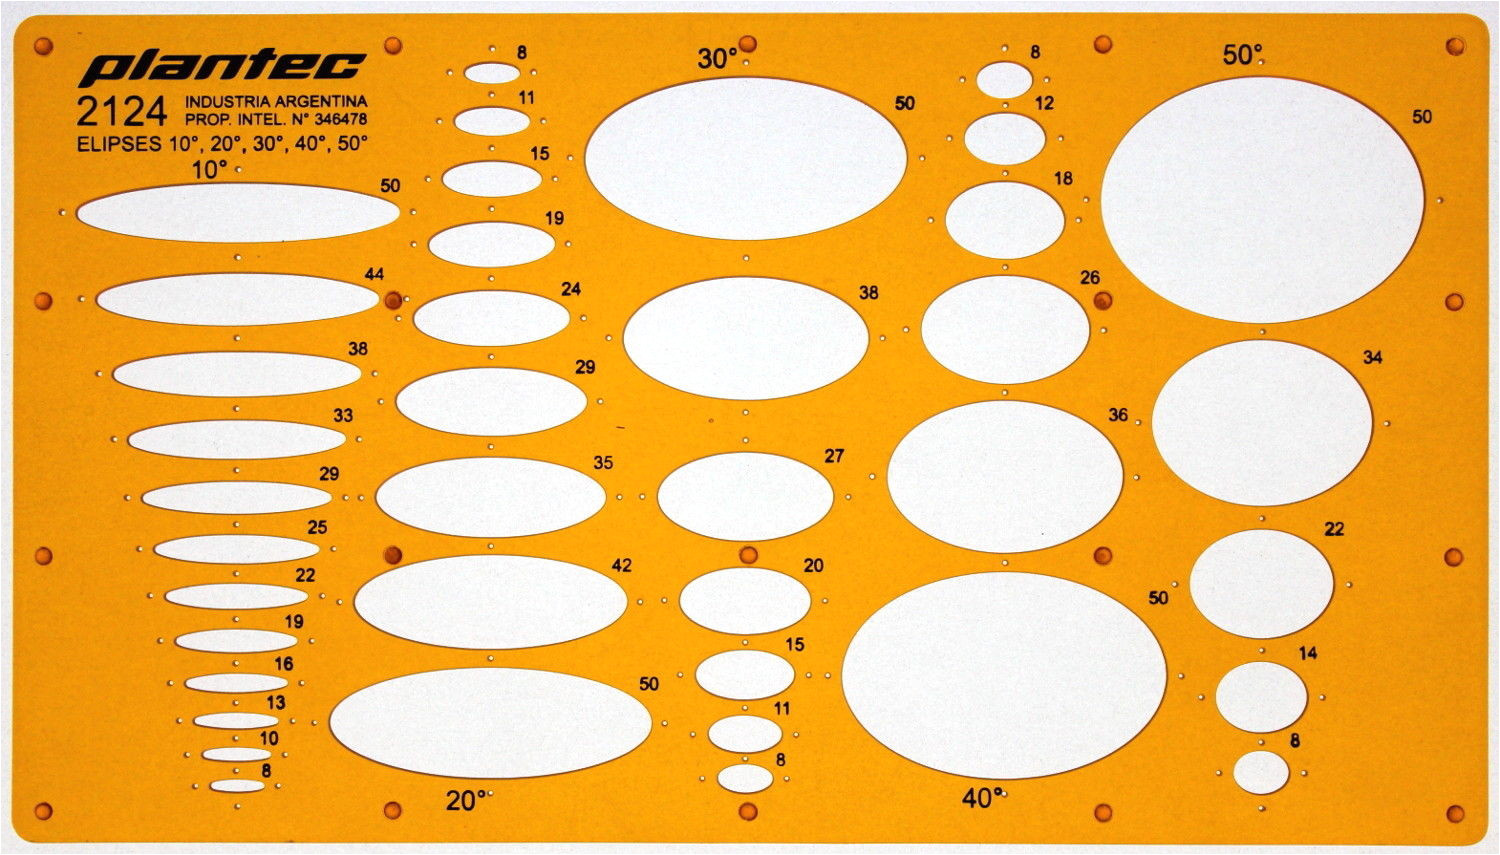 metric ellipse ellipses drawing drafting template stencil 10 170708262203